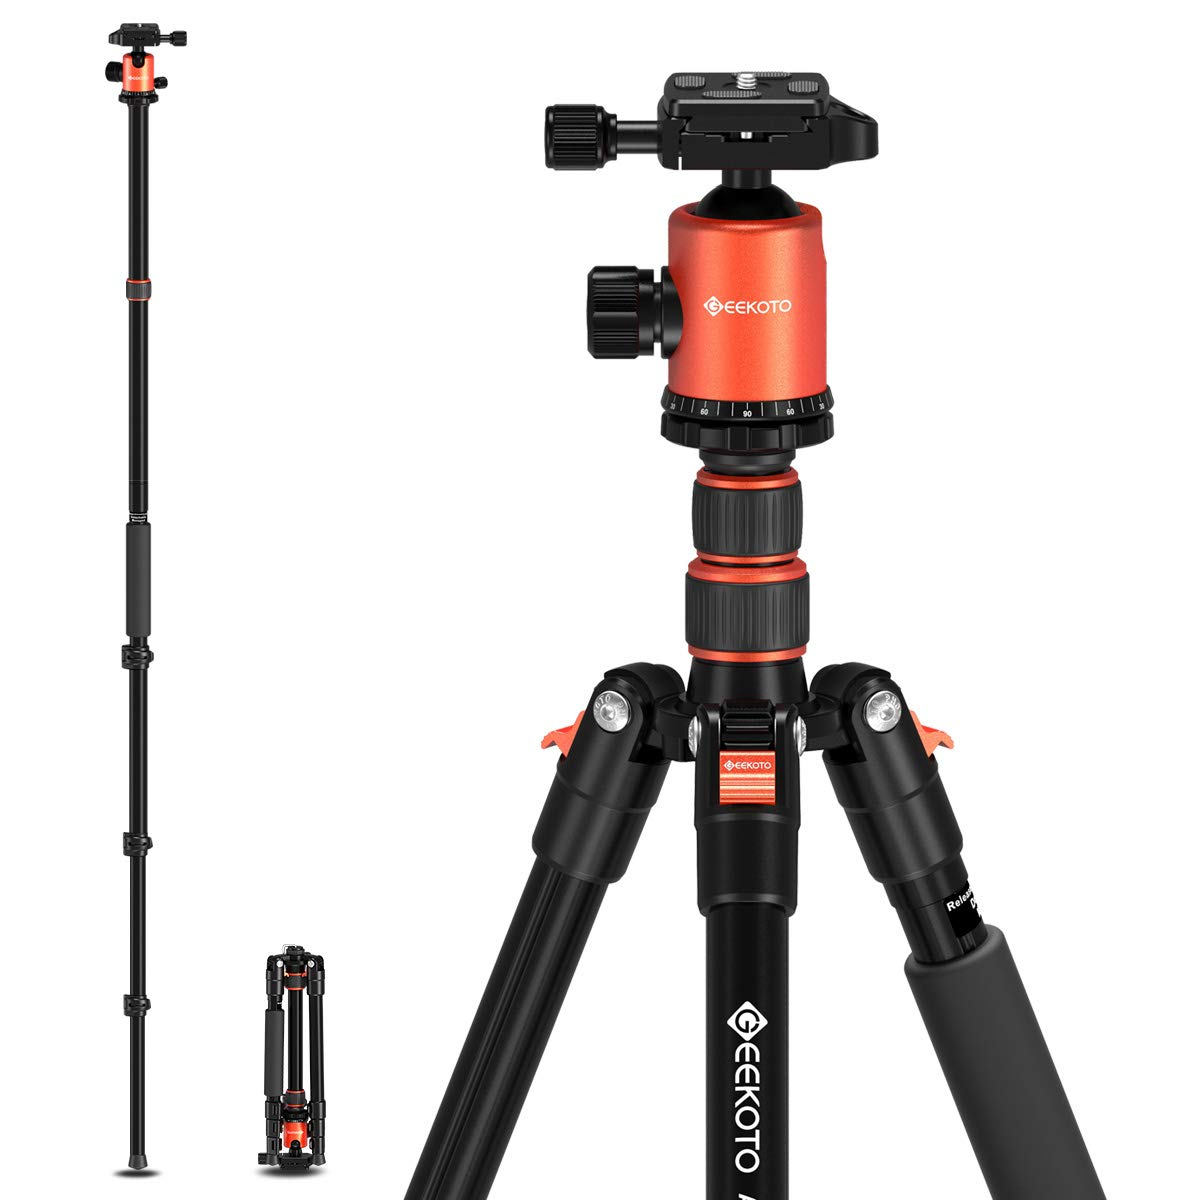 GEEKOTO 77'' Tripod, Camera Tripod for DSLR, Compact Aluminum Tripod with 360 Degree Ball Head and 8kgs Load for Travel and Work by GEEKOTO